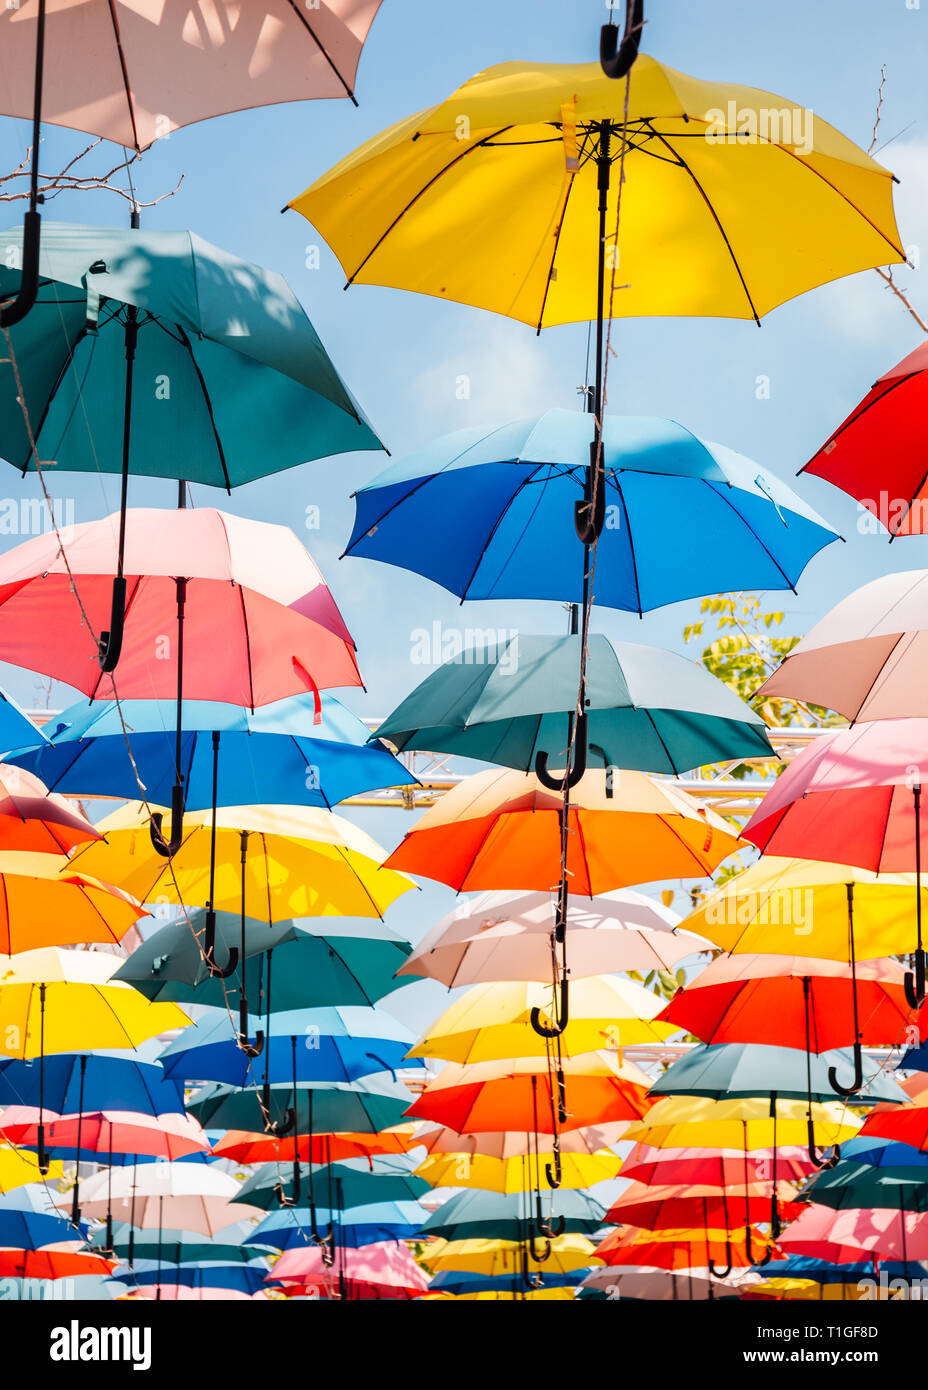 Colorful umbrella background in the sky Stock Photo